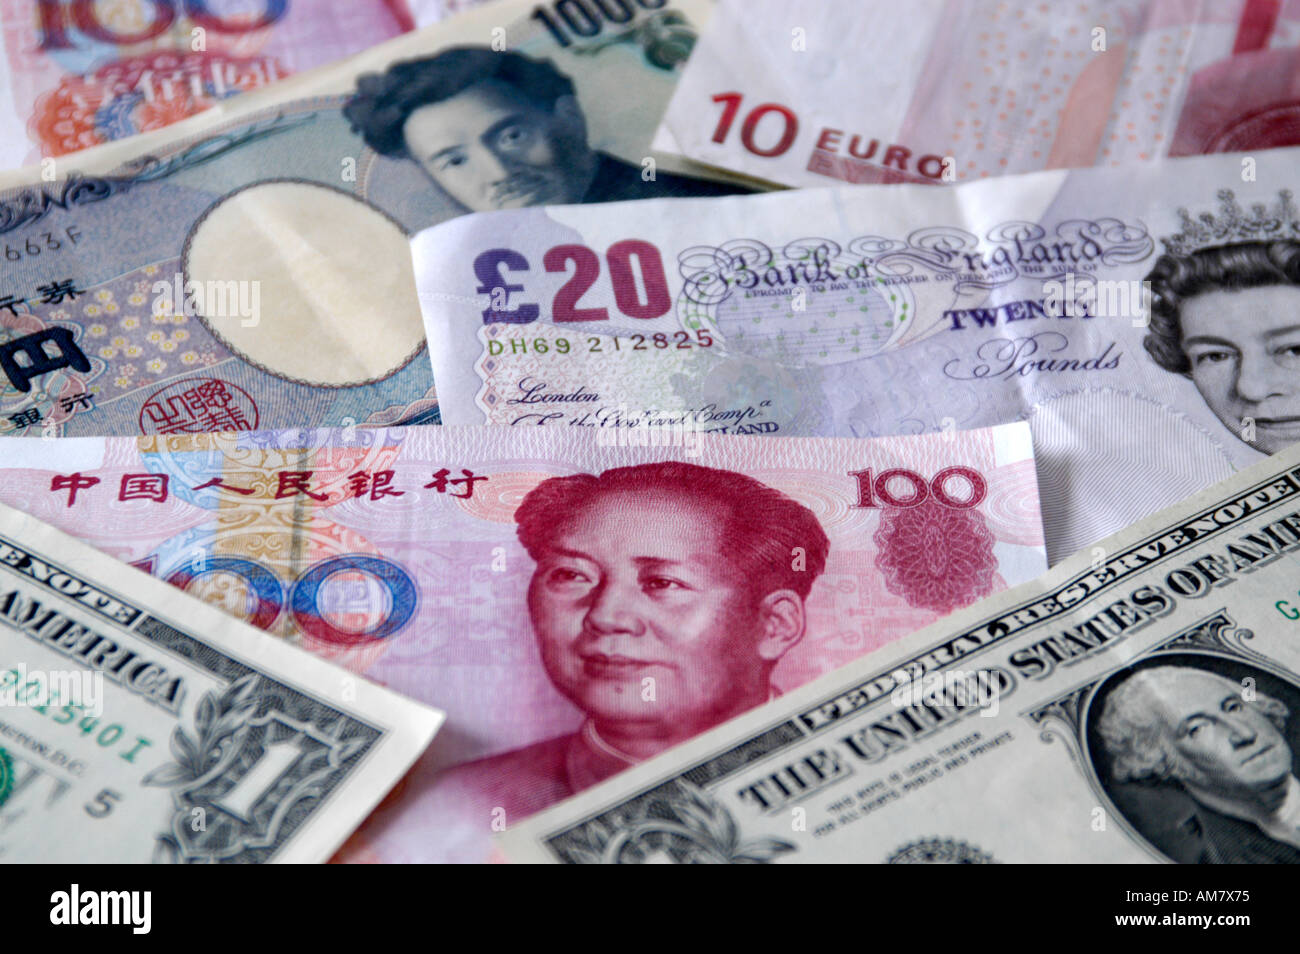 Mix of foreign currency notes - Stock Image